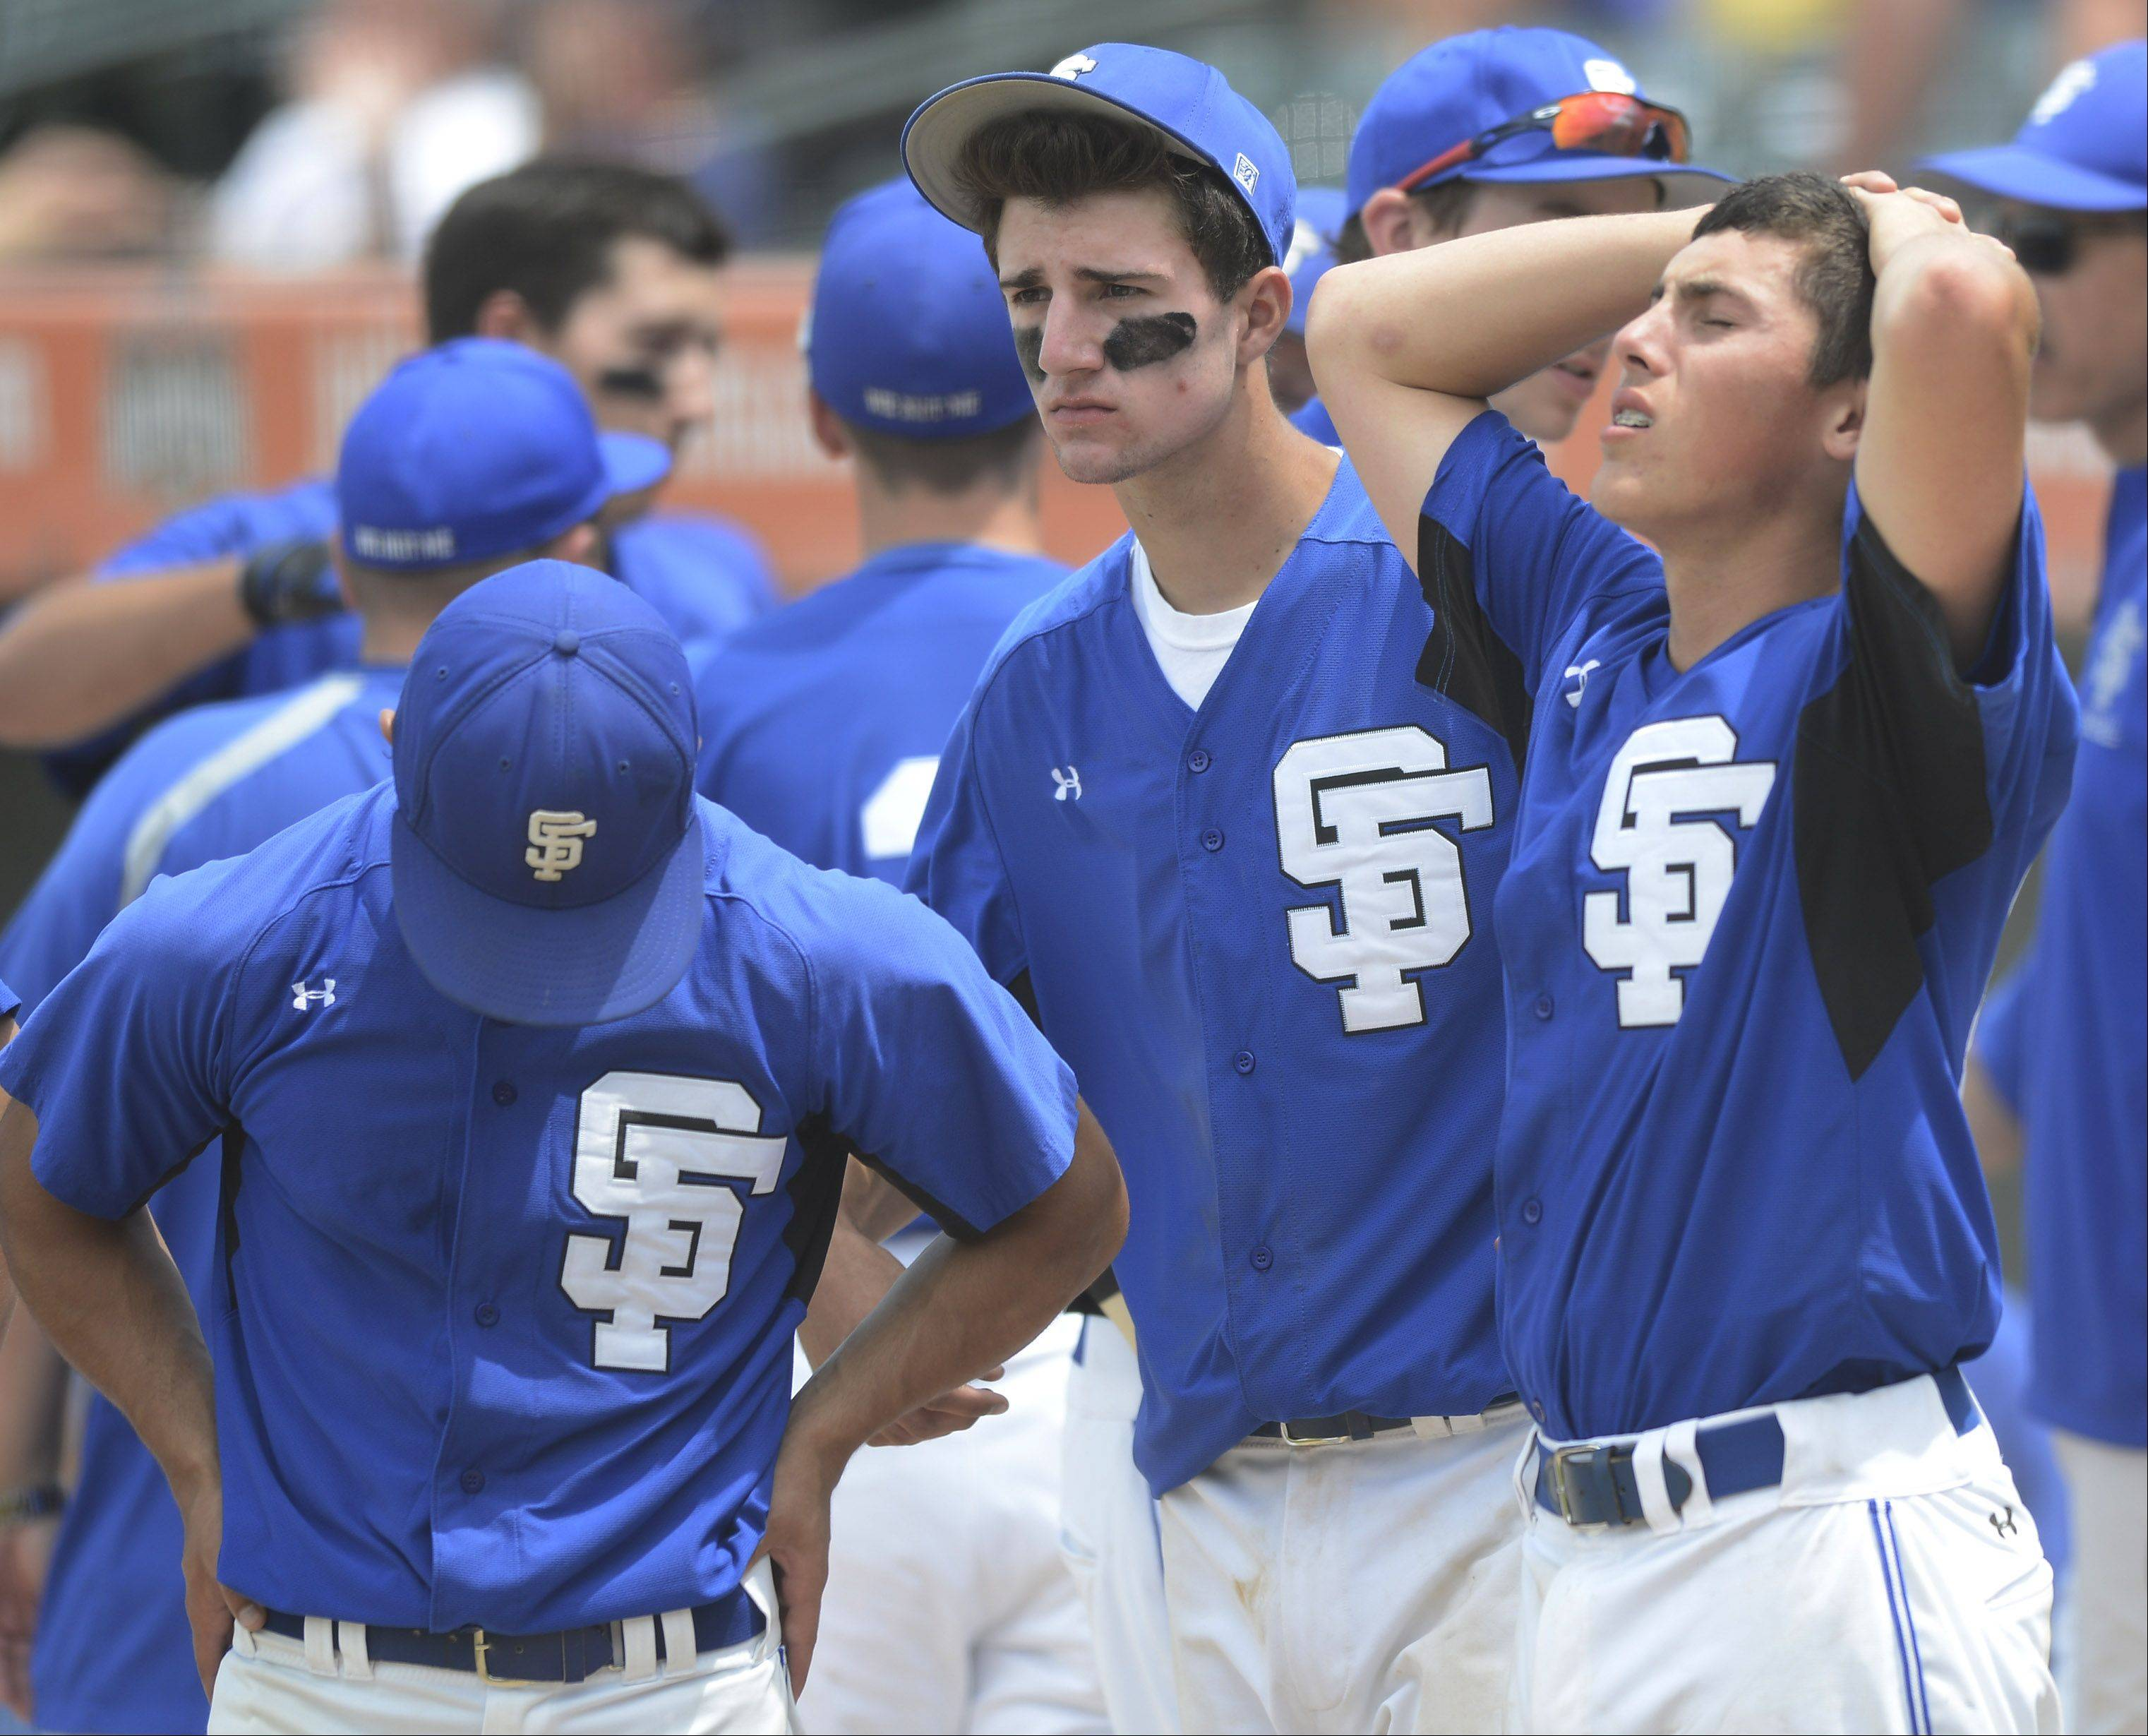 St. Francis players react as Joliet Catholic celebrates its 5-0 win during the Class 3A state baseball championship game at Silver Cross Field in Joliet Saturday.